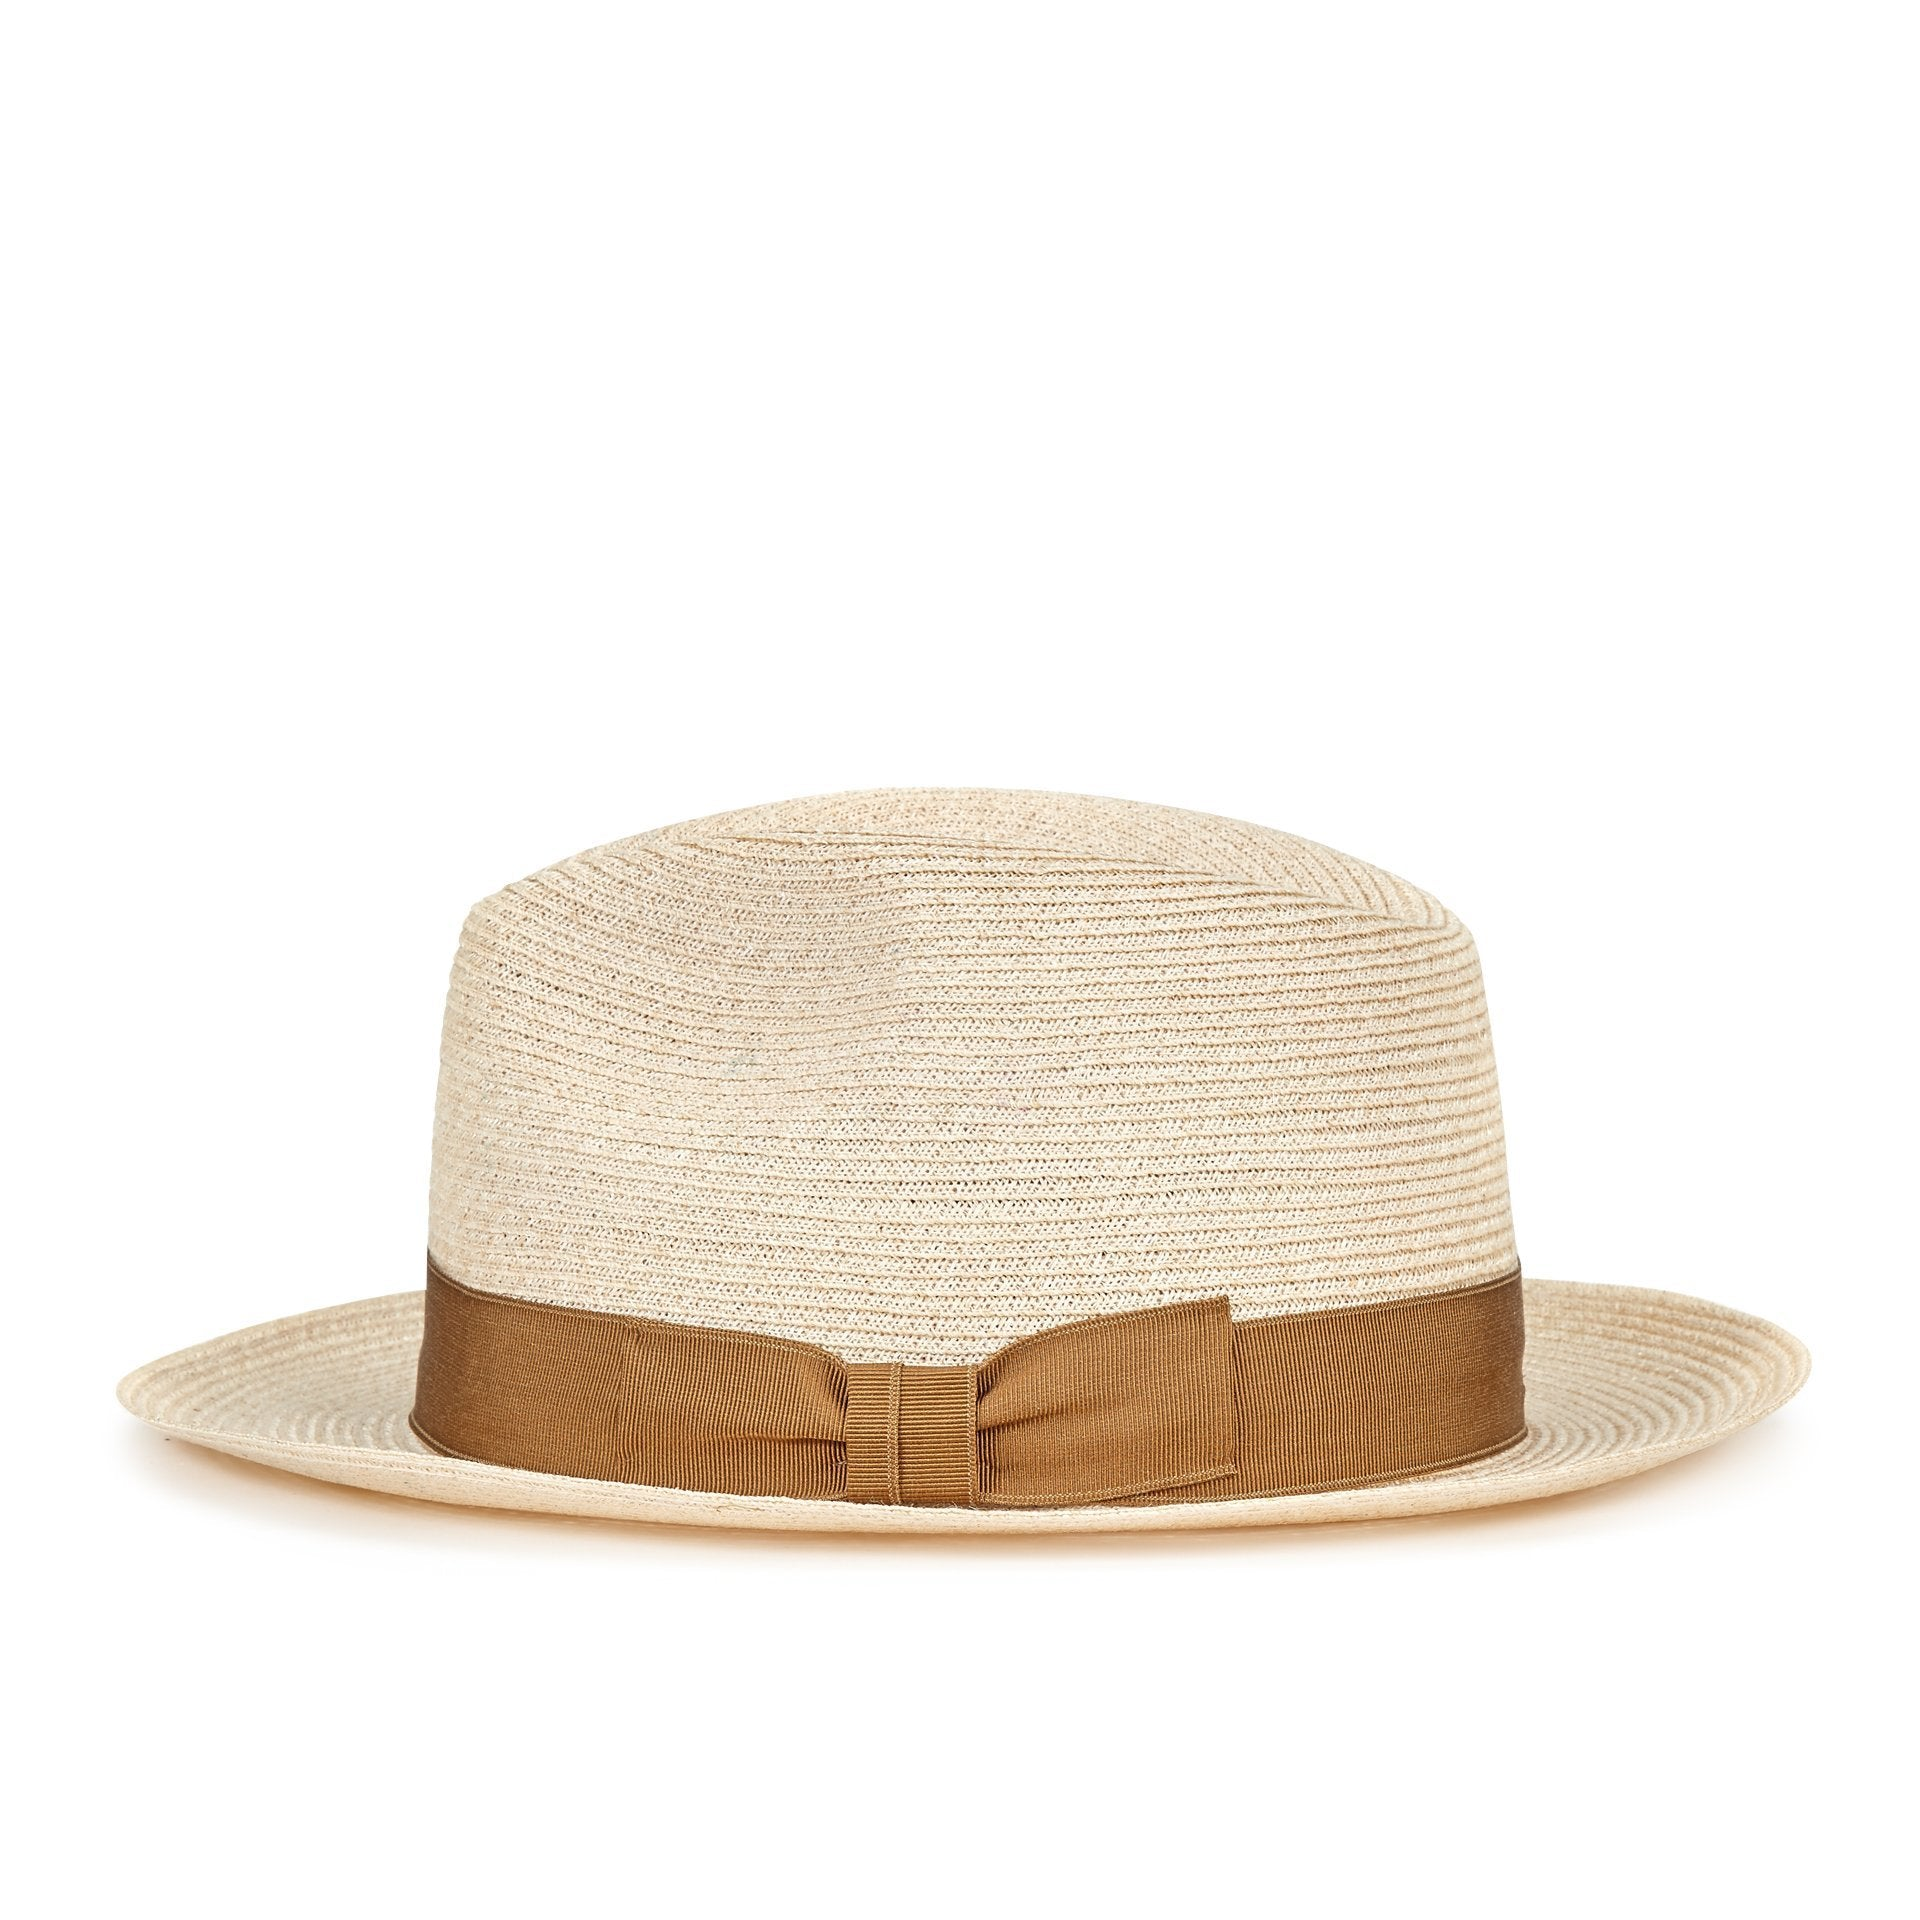 Provence hemp trilby - Panamas, Boaters and Straw sun hats - Lock & Co. Hatters London UK